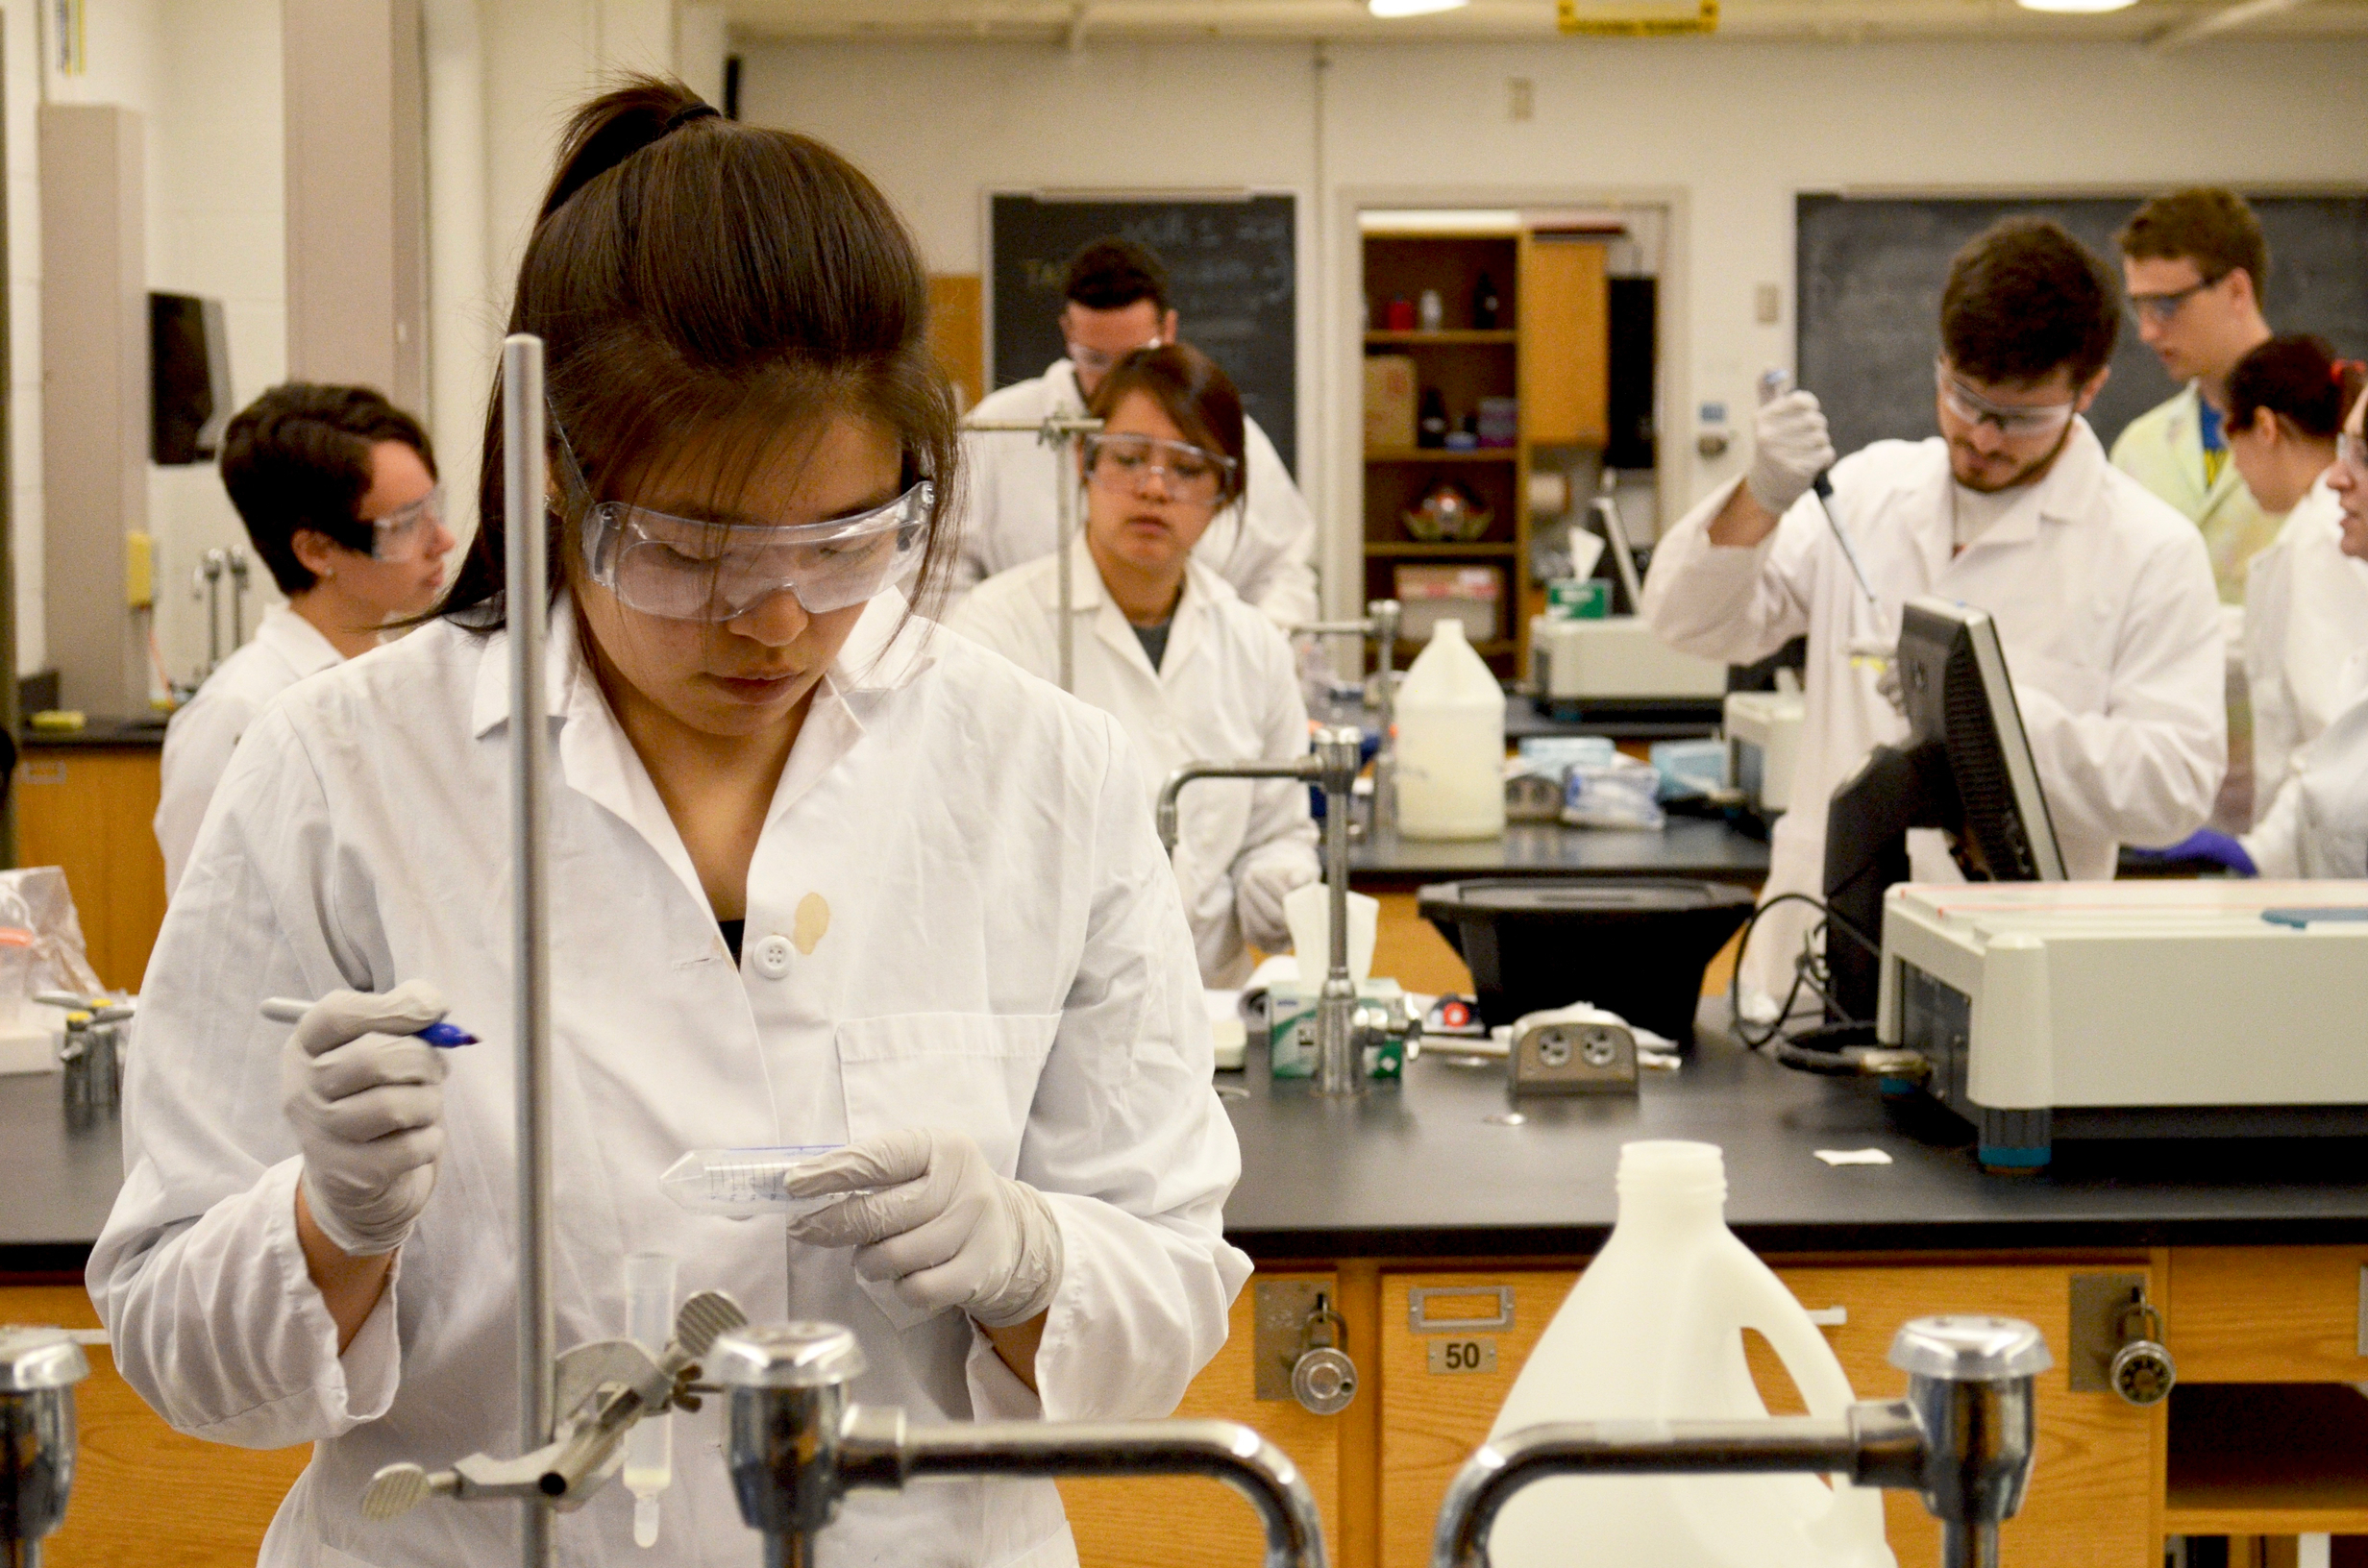 back cover photo for newsletter fall 2016 - students in chemistry lab